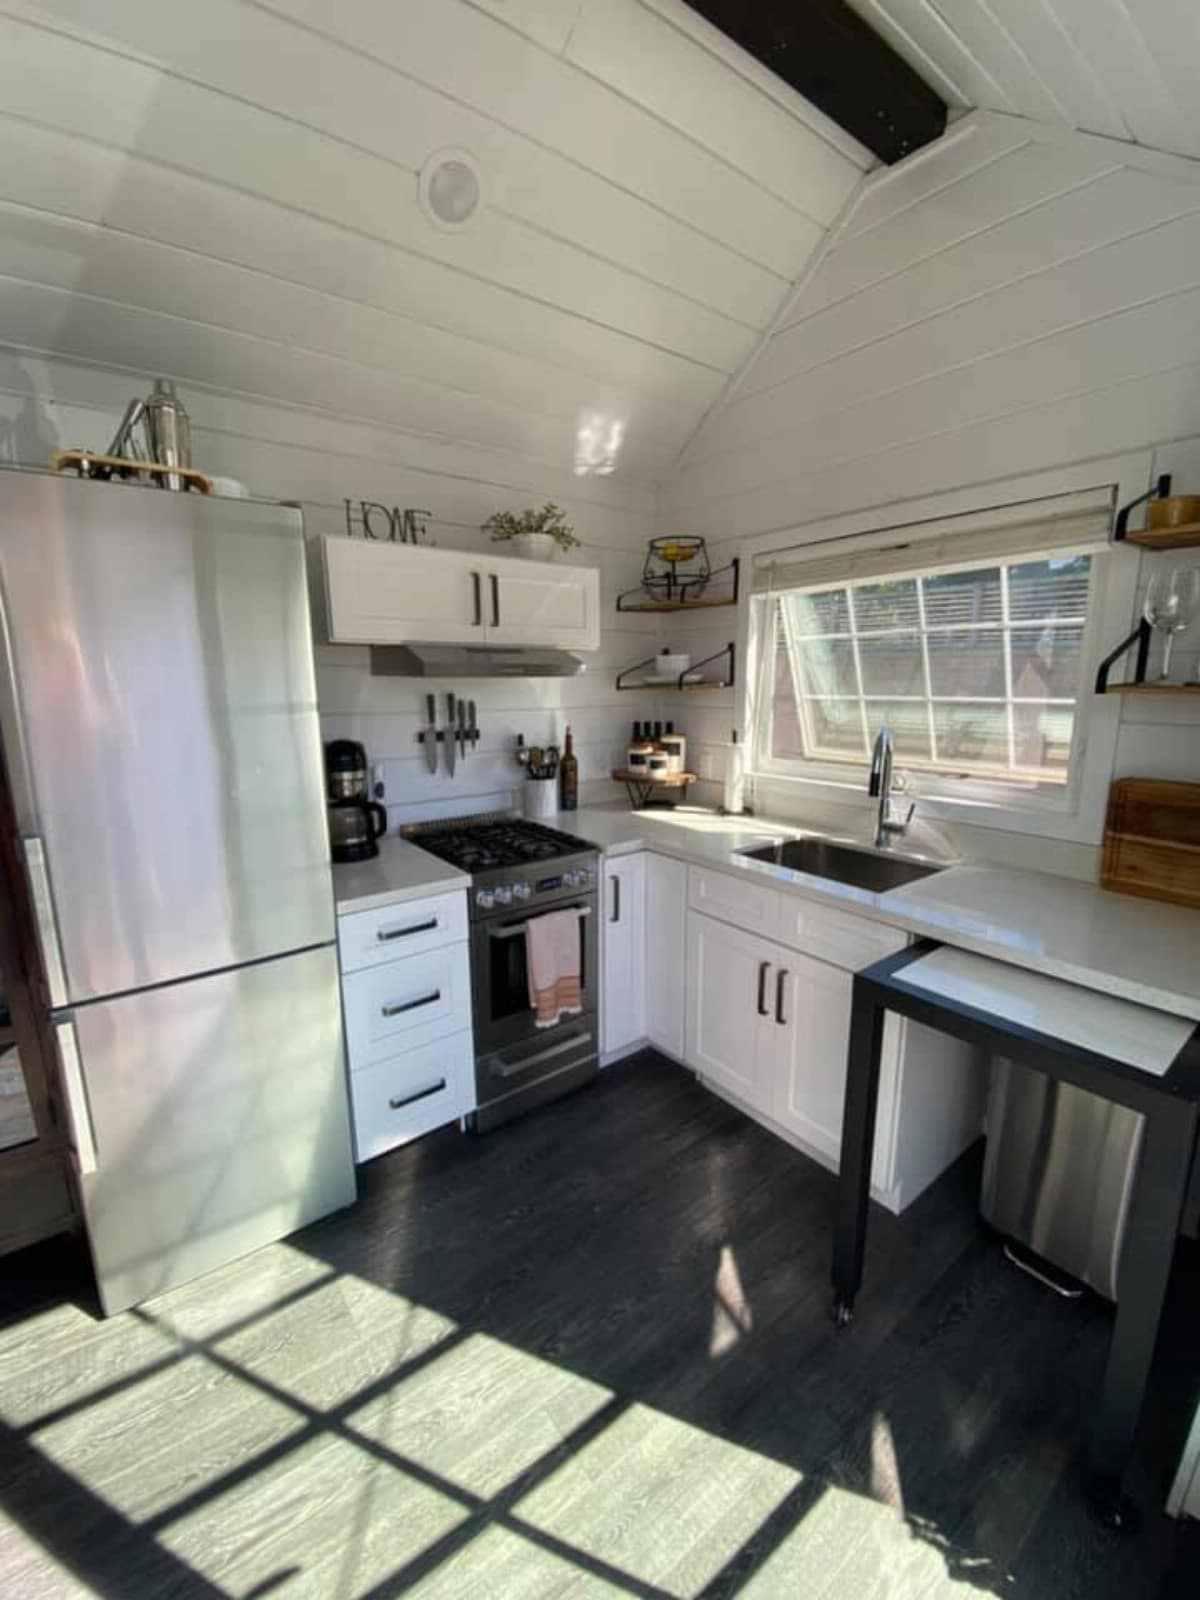 Full kitchen in white walled tiny house